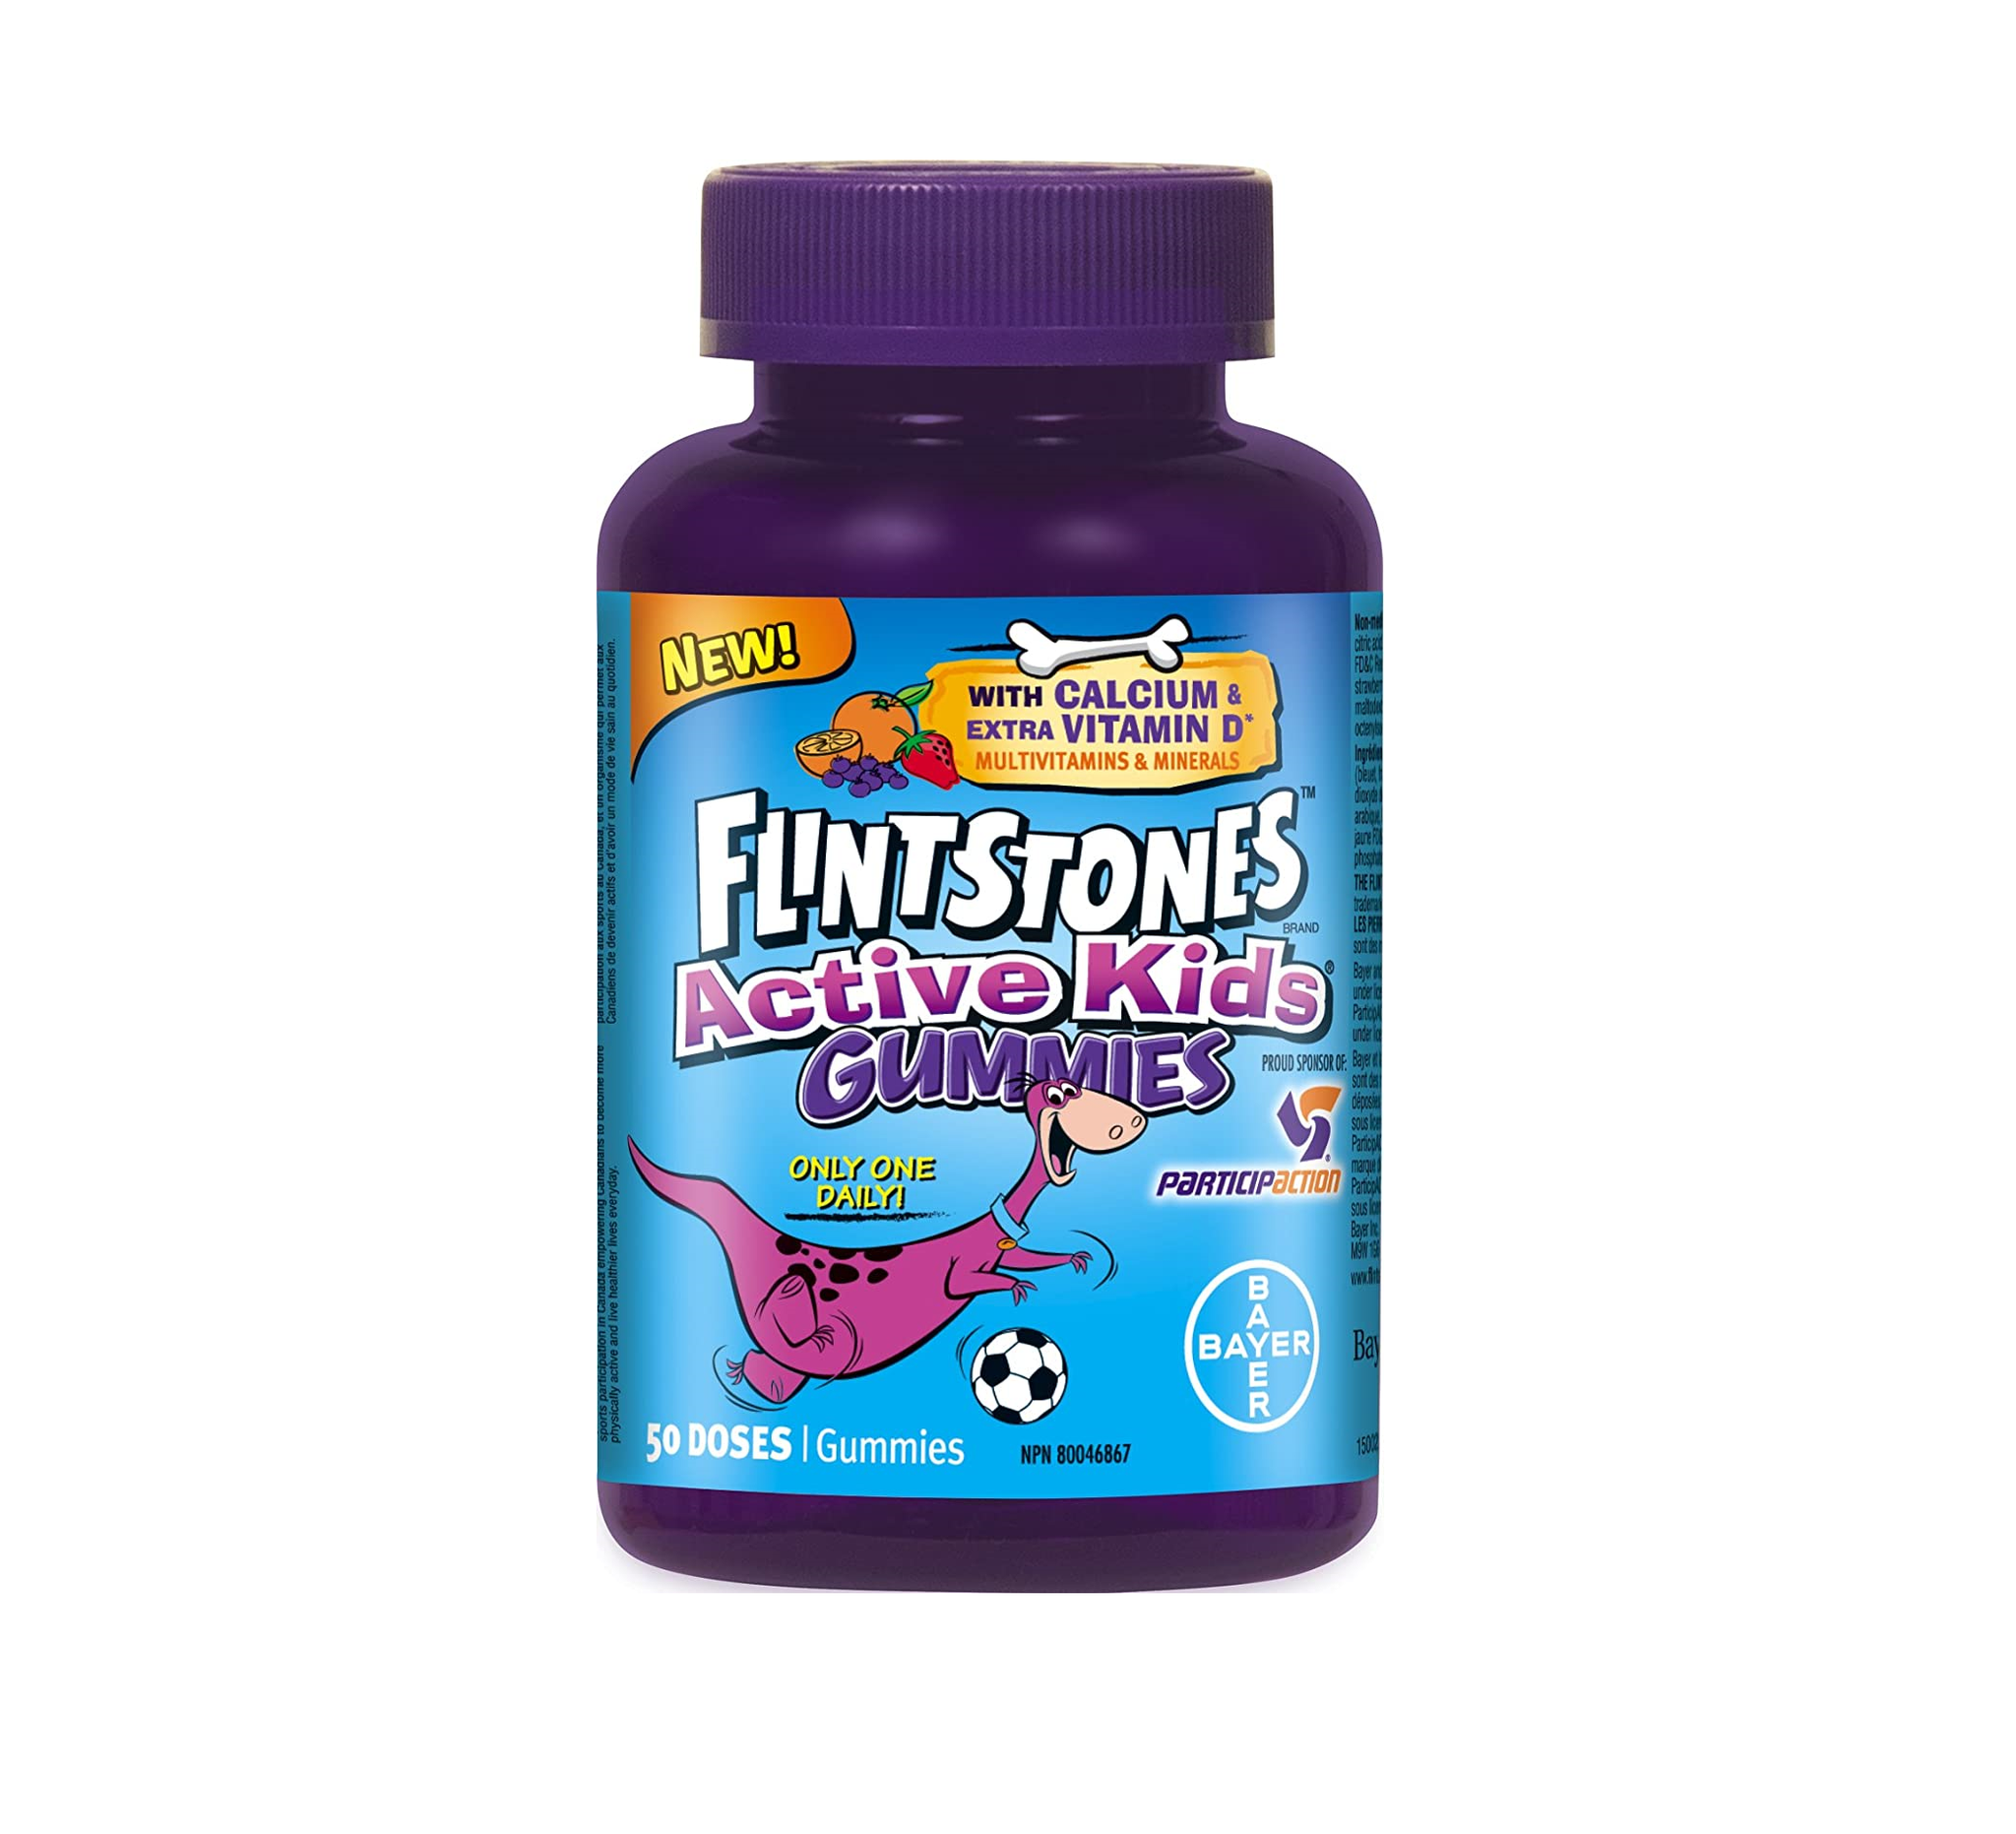 Flintstones Active Kids Multivitamins & Minerals 50 Gummies